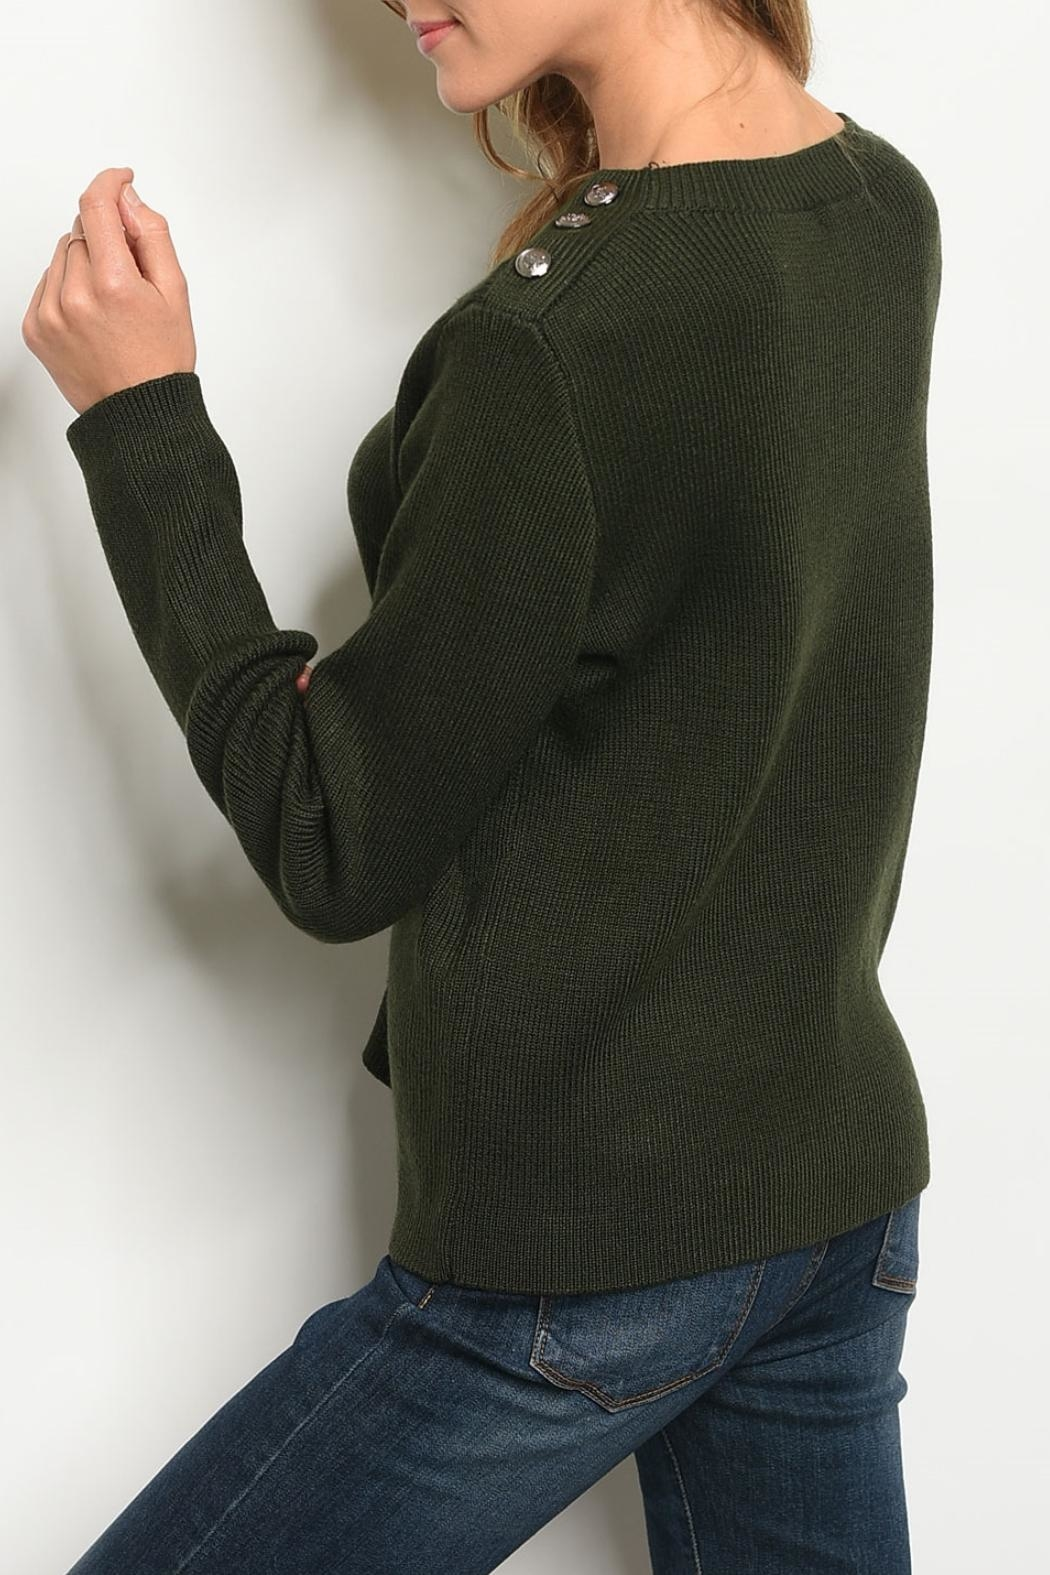 Le Lis Olive Knit Sweater - Front Full Image